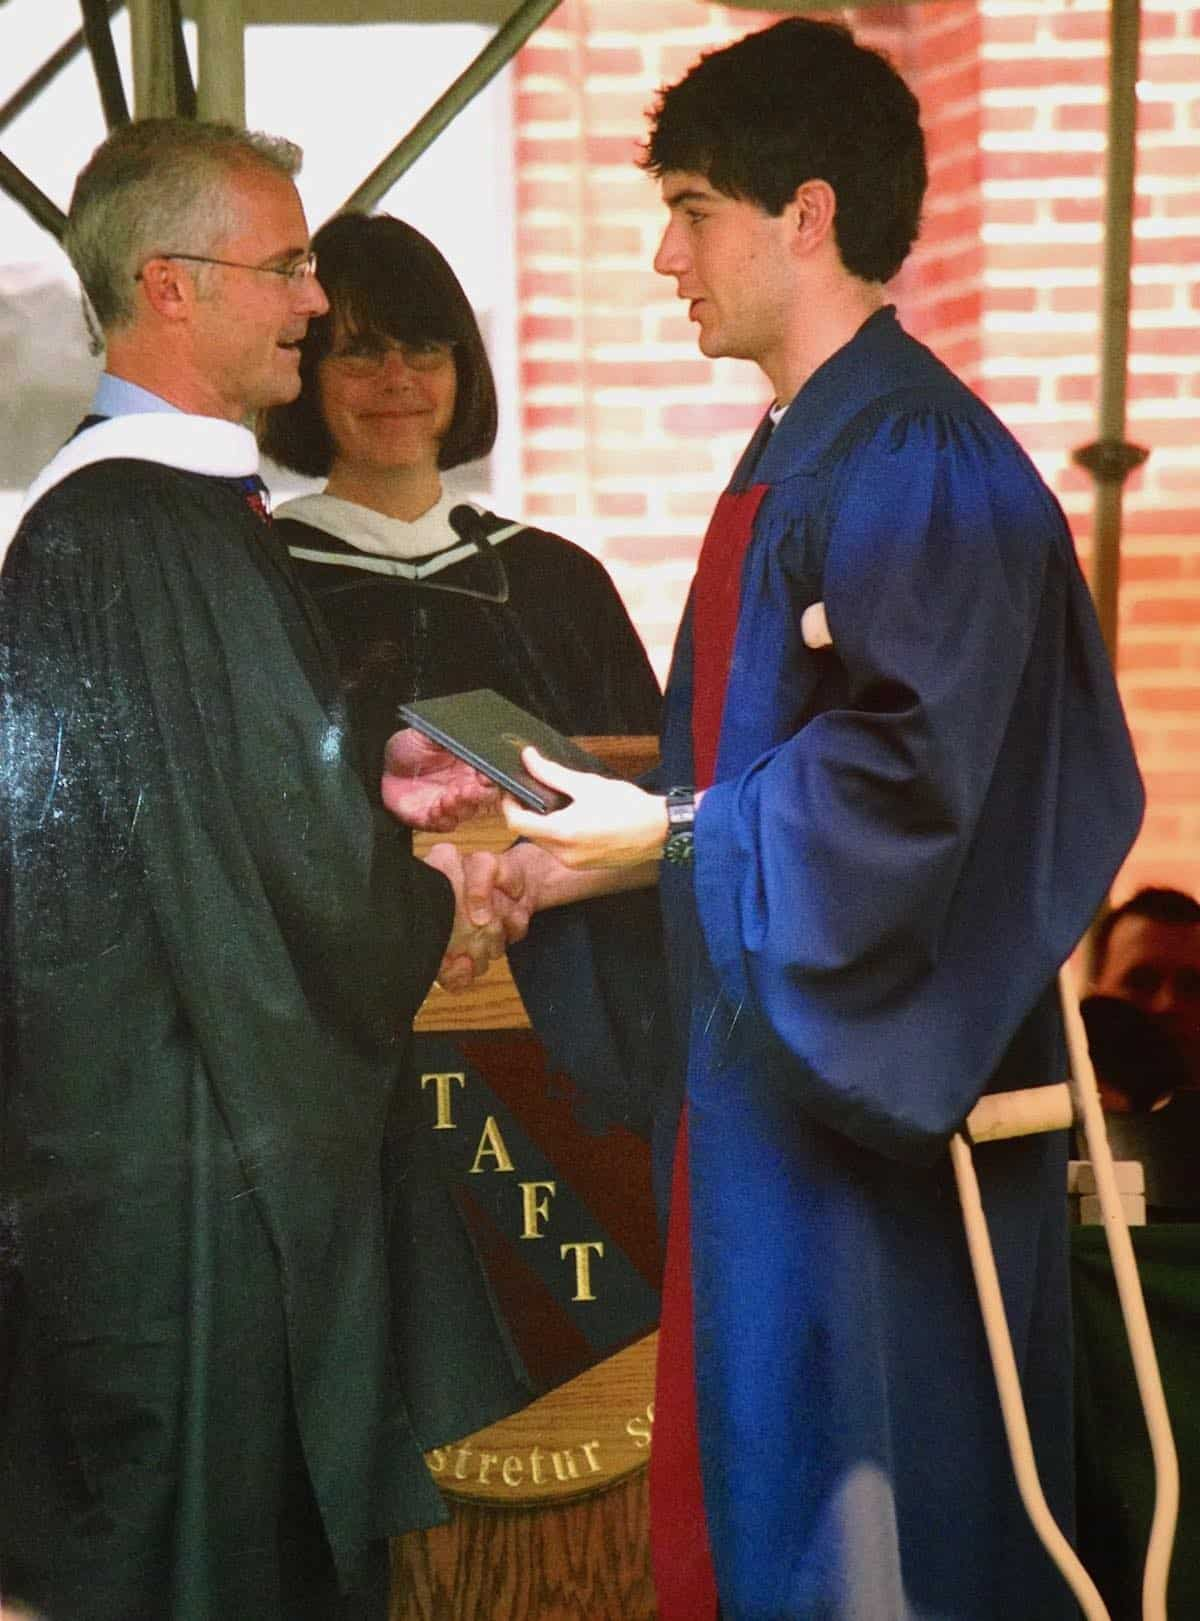 Oh, happy day his high school diploma in hand